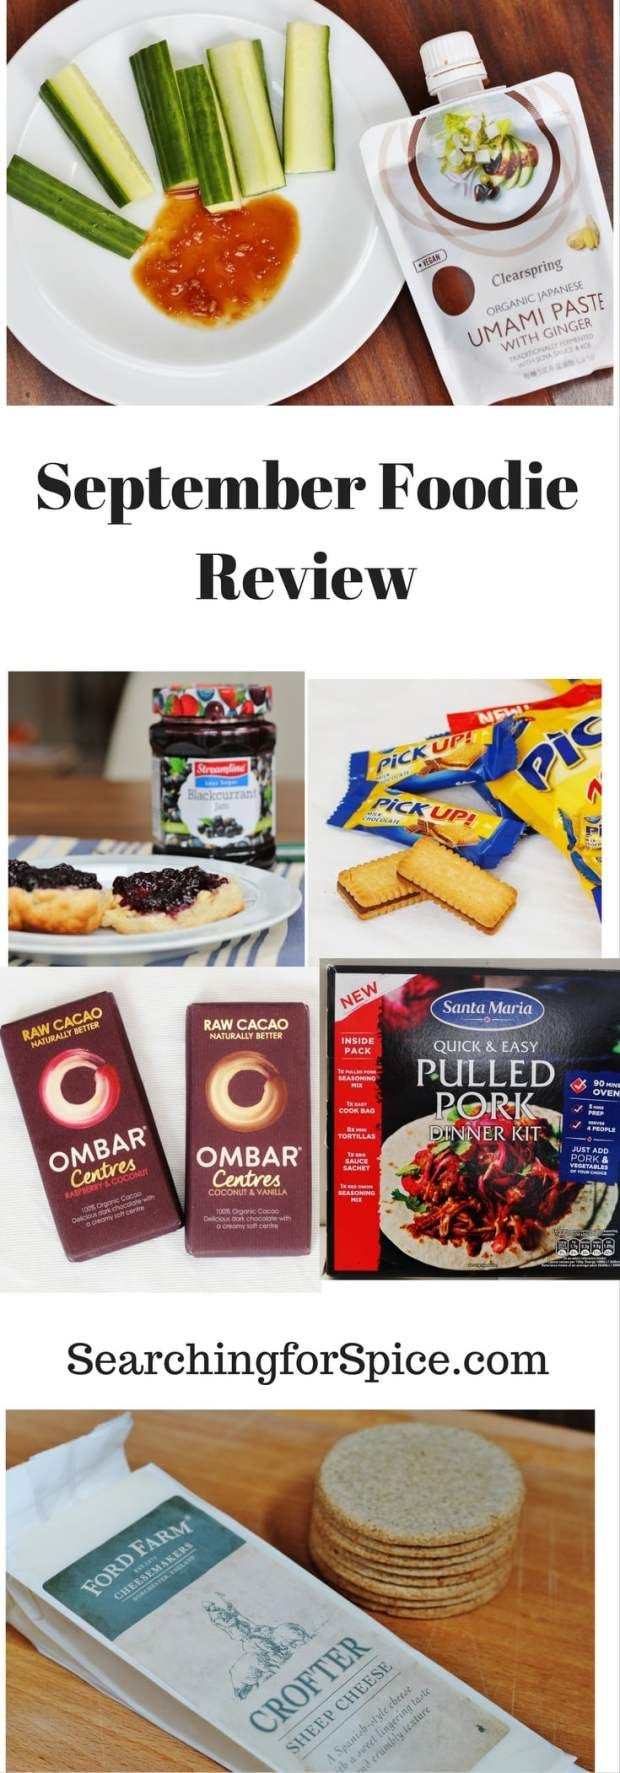 September Foodie Review